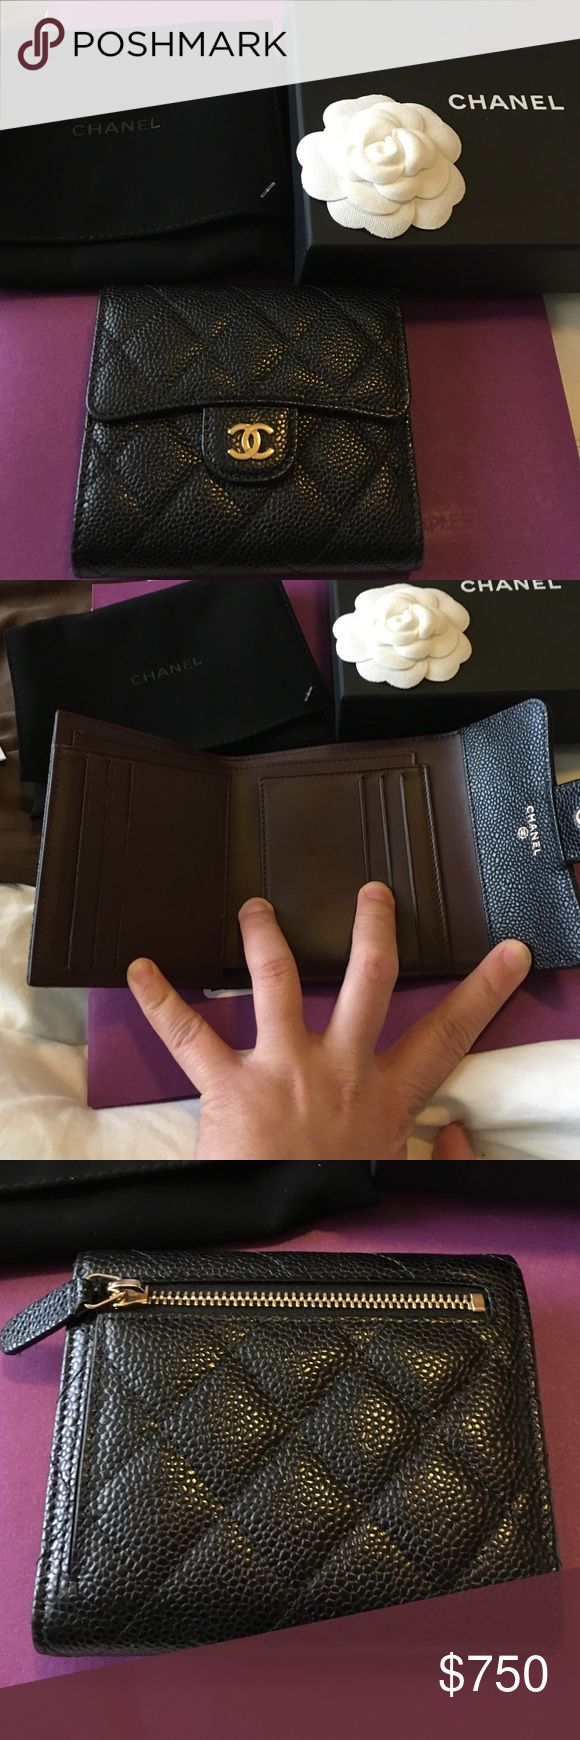 Chanel small wallet Purchased it in Oct 2016 and used just once. I decided to sell because I need a bigger wallet with more card slots. There is a small scratch on one corner but it is not really noticeable. This is authentic. No low ballers please. Negotiable. Talk to me:) CHANEL Bags Wallets